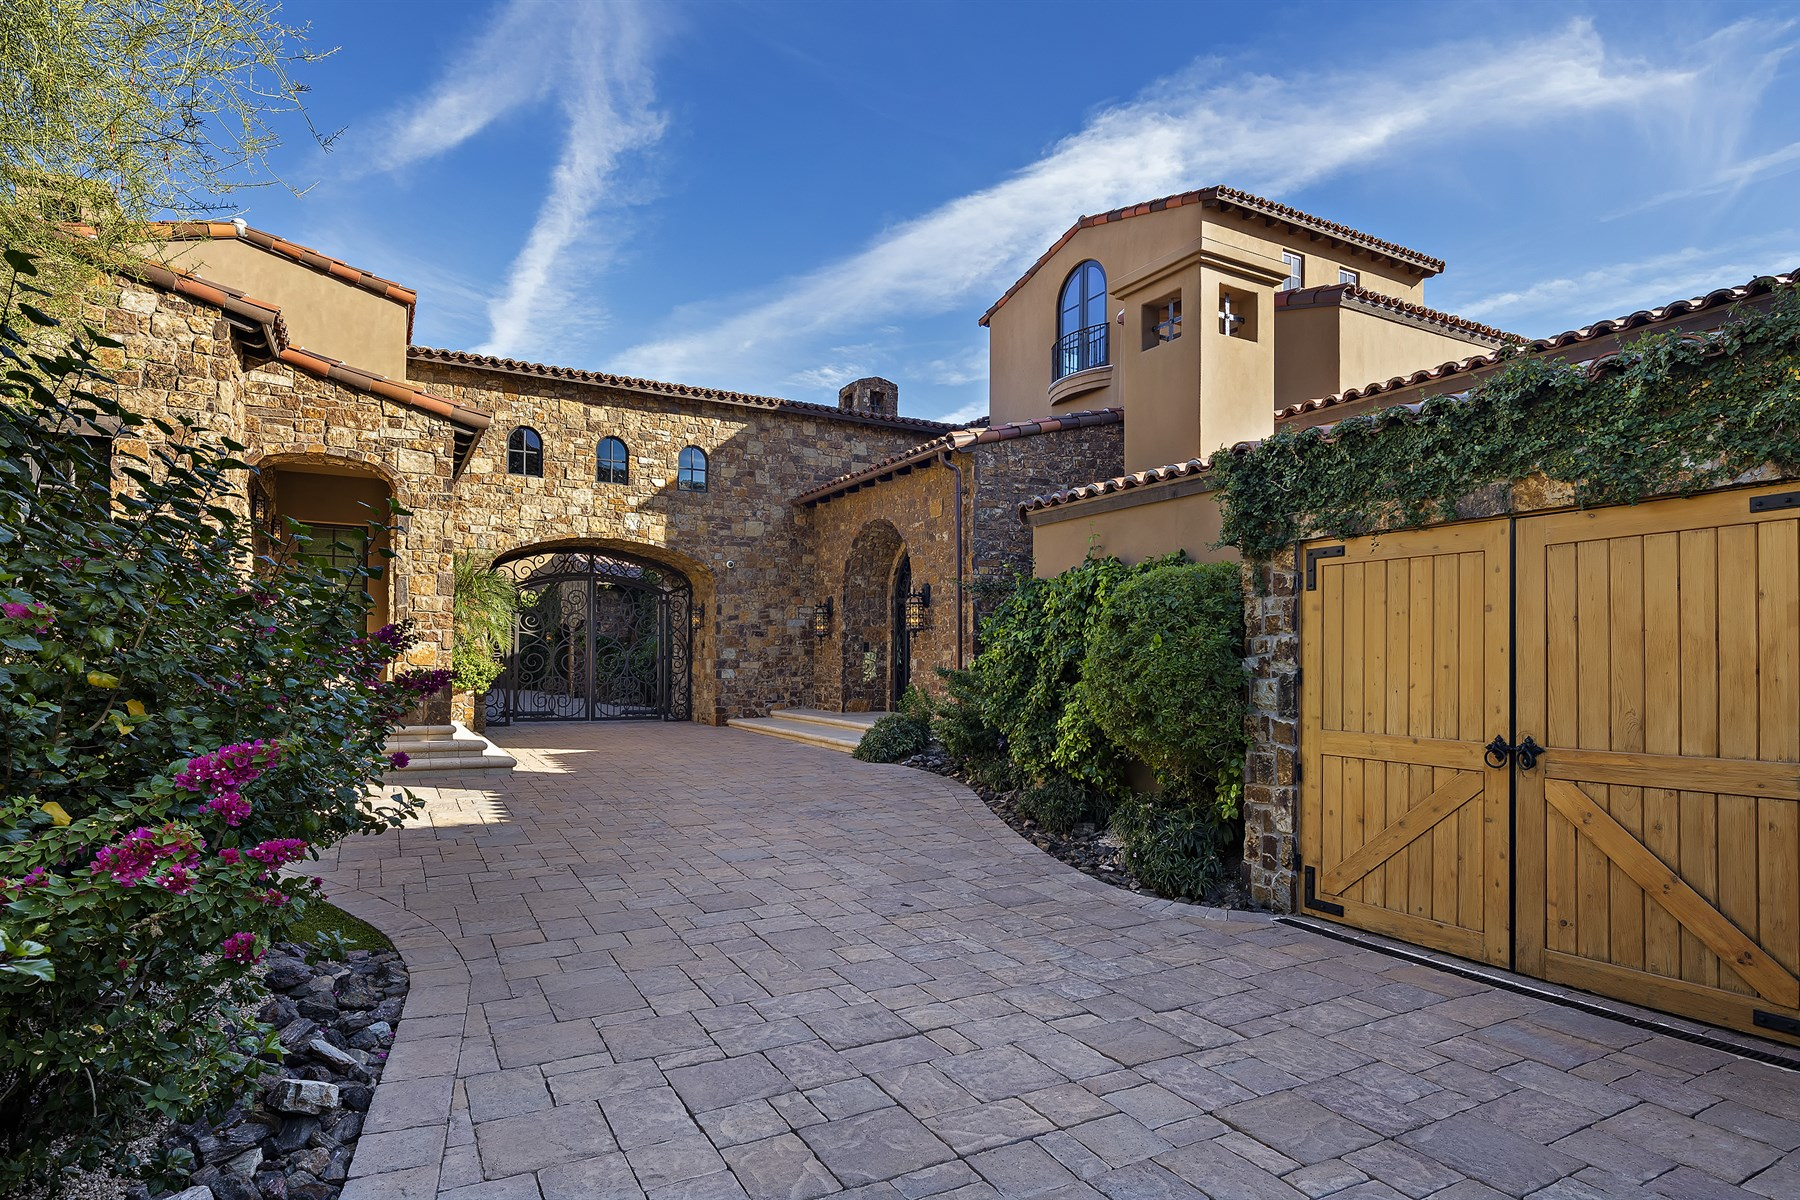 Casa Unifamiliar por un Venta en Exquisite European Manor in The Exclusive Upper Canyon at Silverleaf 20913 N 104th Street #1488 Scottsdale, Arizona, 85255 Estados Unidos